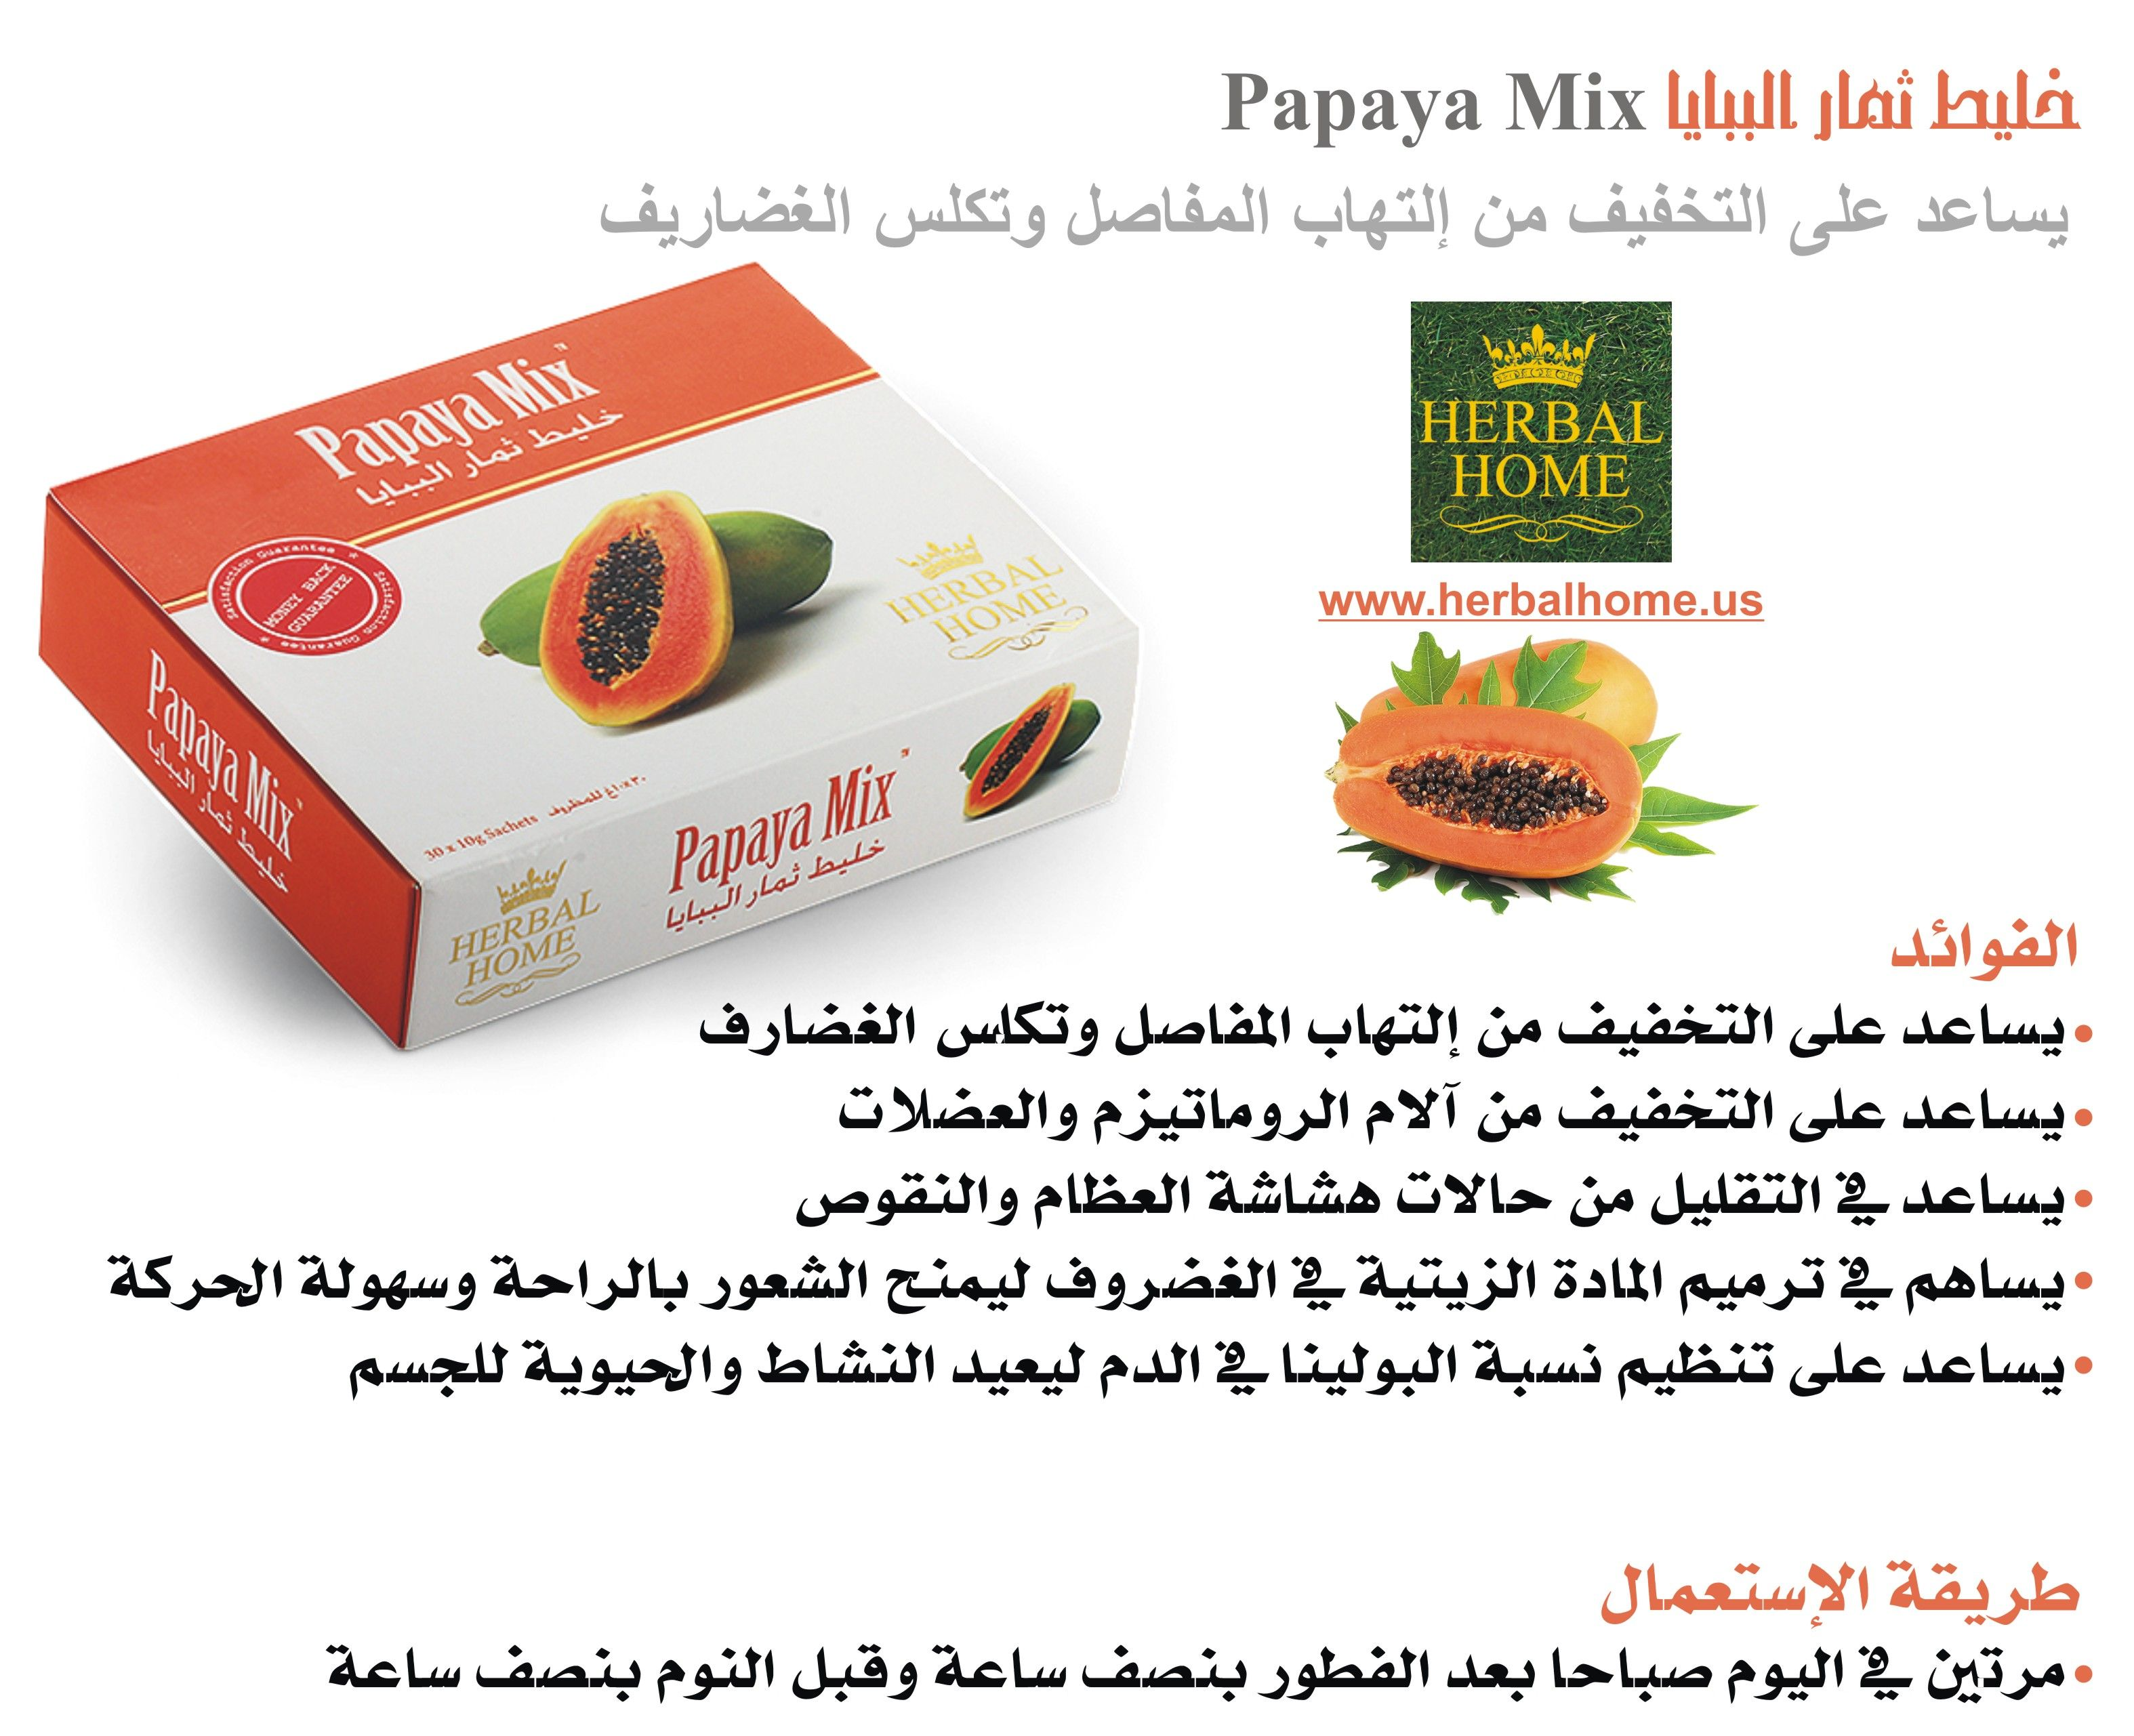 For More Information Please Visit Our Website Www Herbalhome Us Or Www Ismailradi Com Whatsapp 60173170152 Herbalism Papaya Website